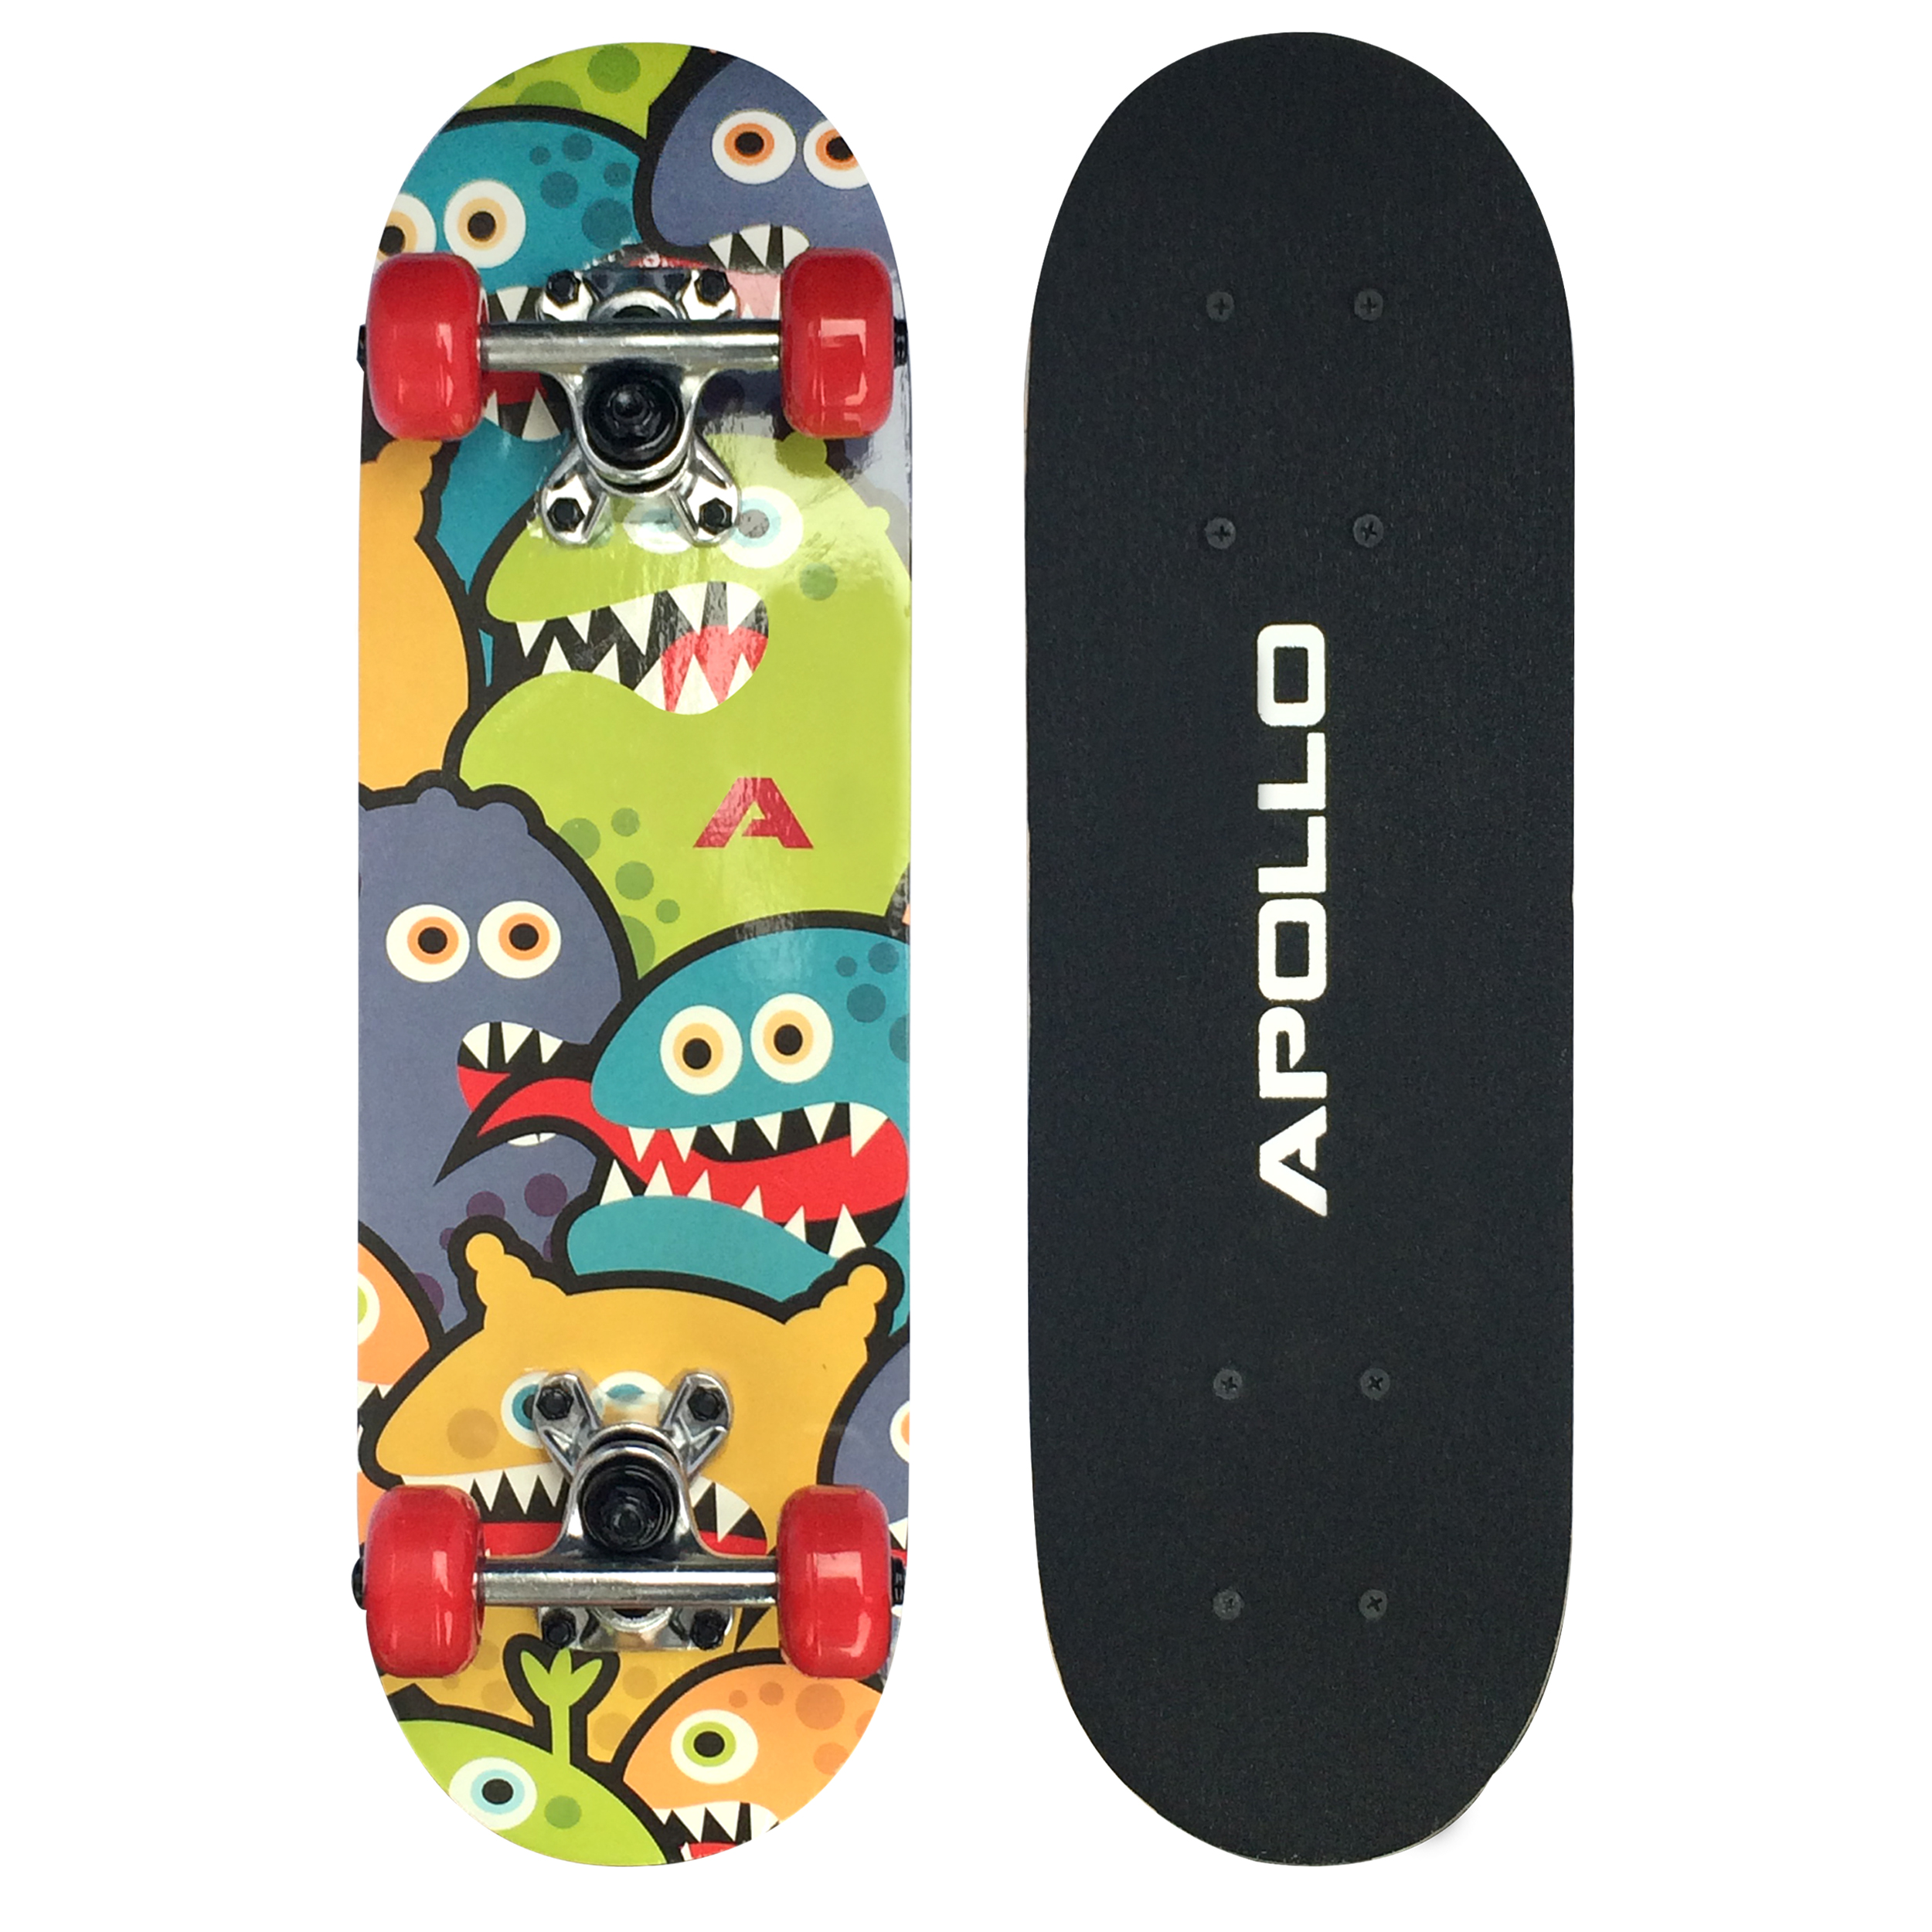 apollo skateboard skate board kinder funboard skater. Black Bedroom Furniture Sets. Home Design Ideas